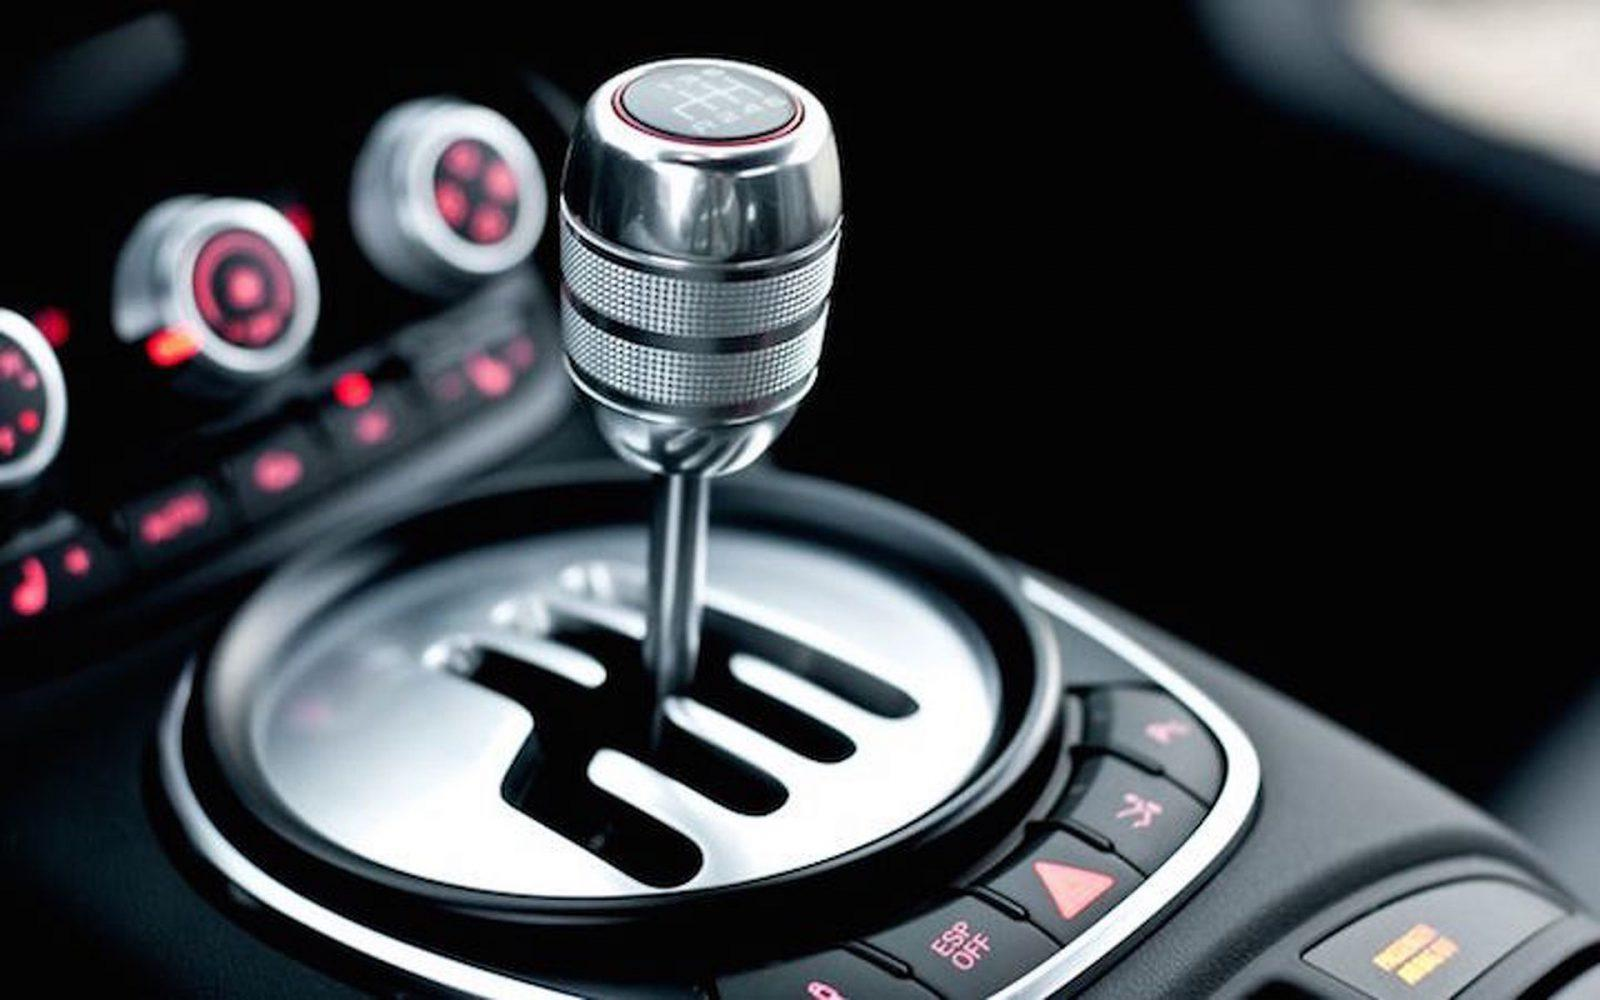 manual transmission won't go into gear when running